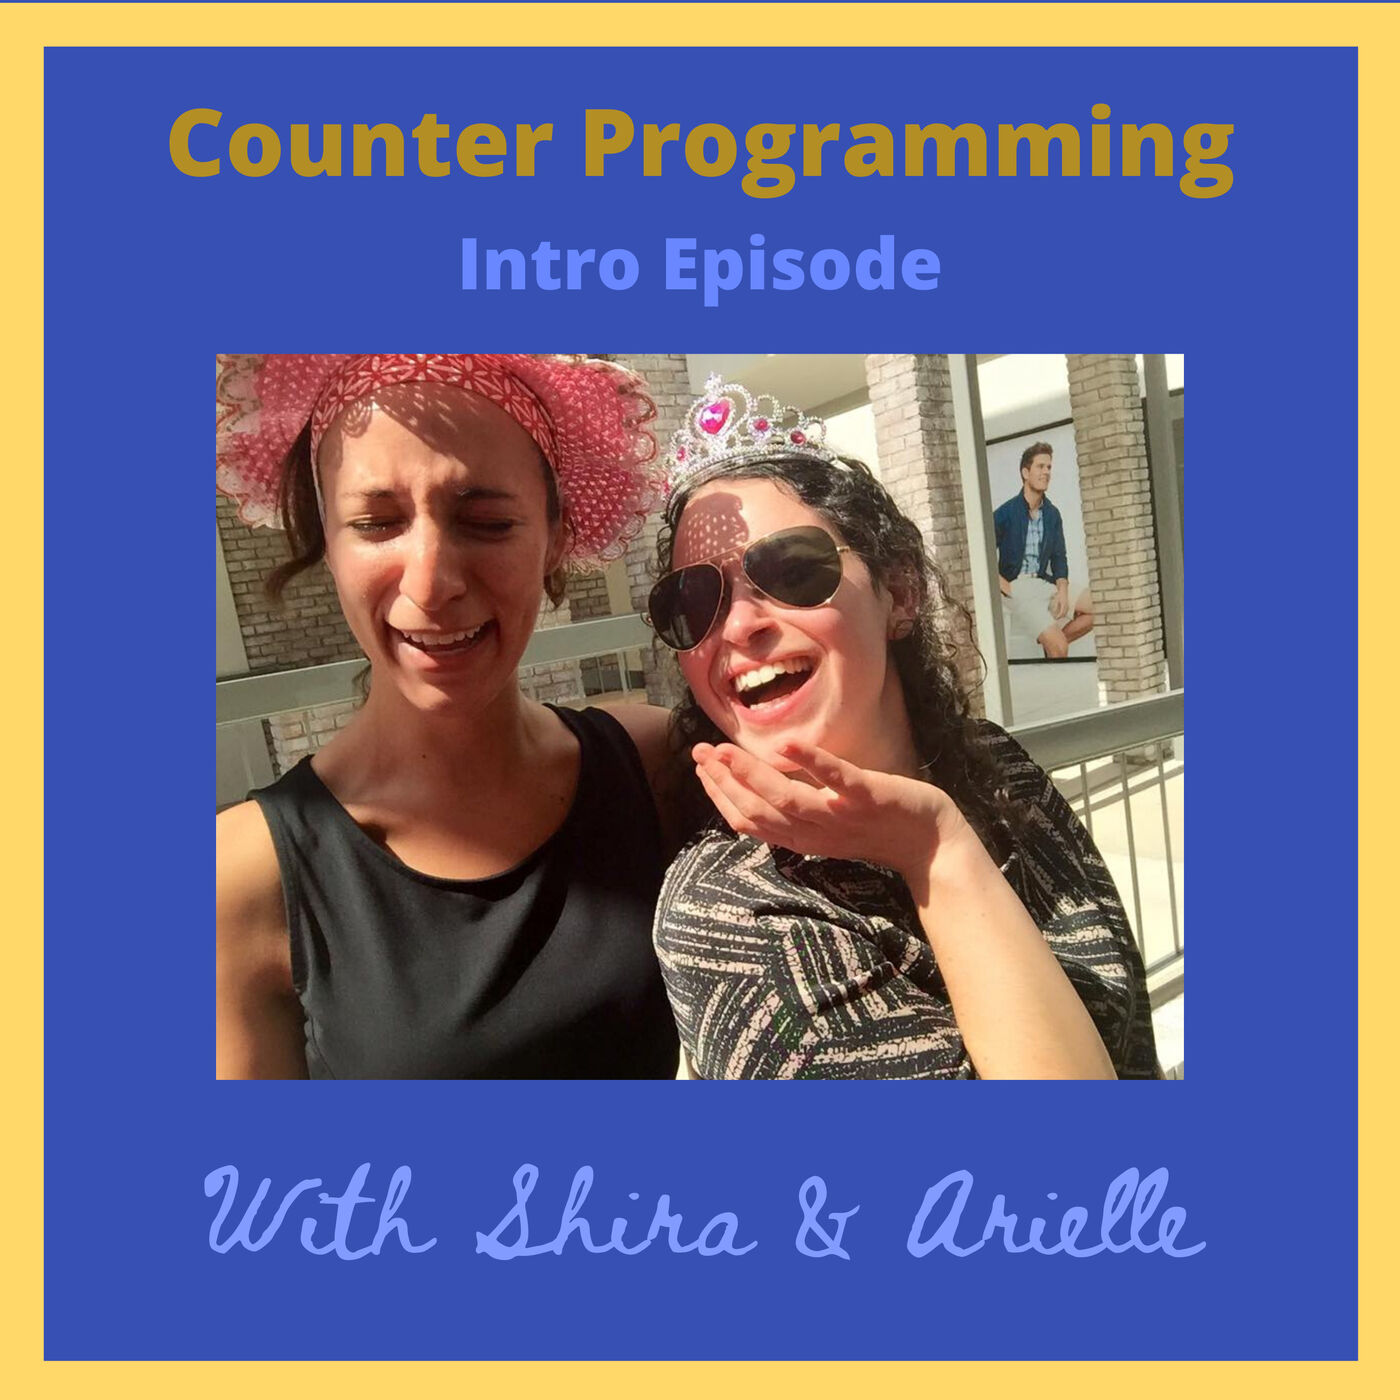 Intro: Welcome to Counter Programming with Shira & Arielle